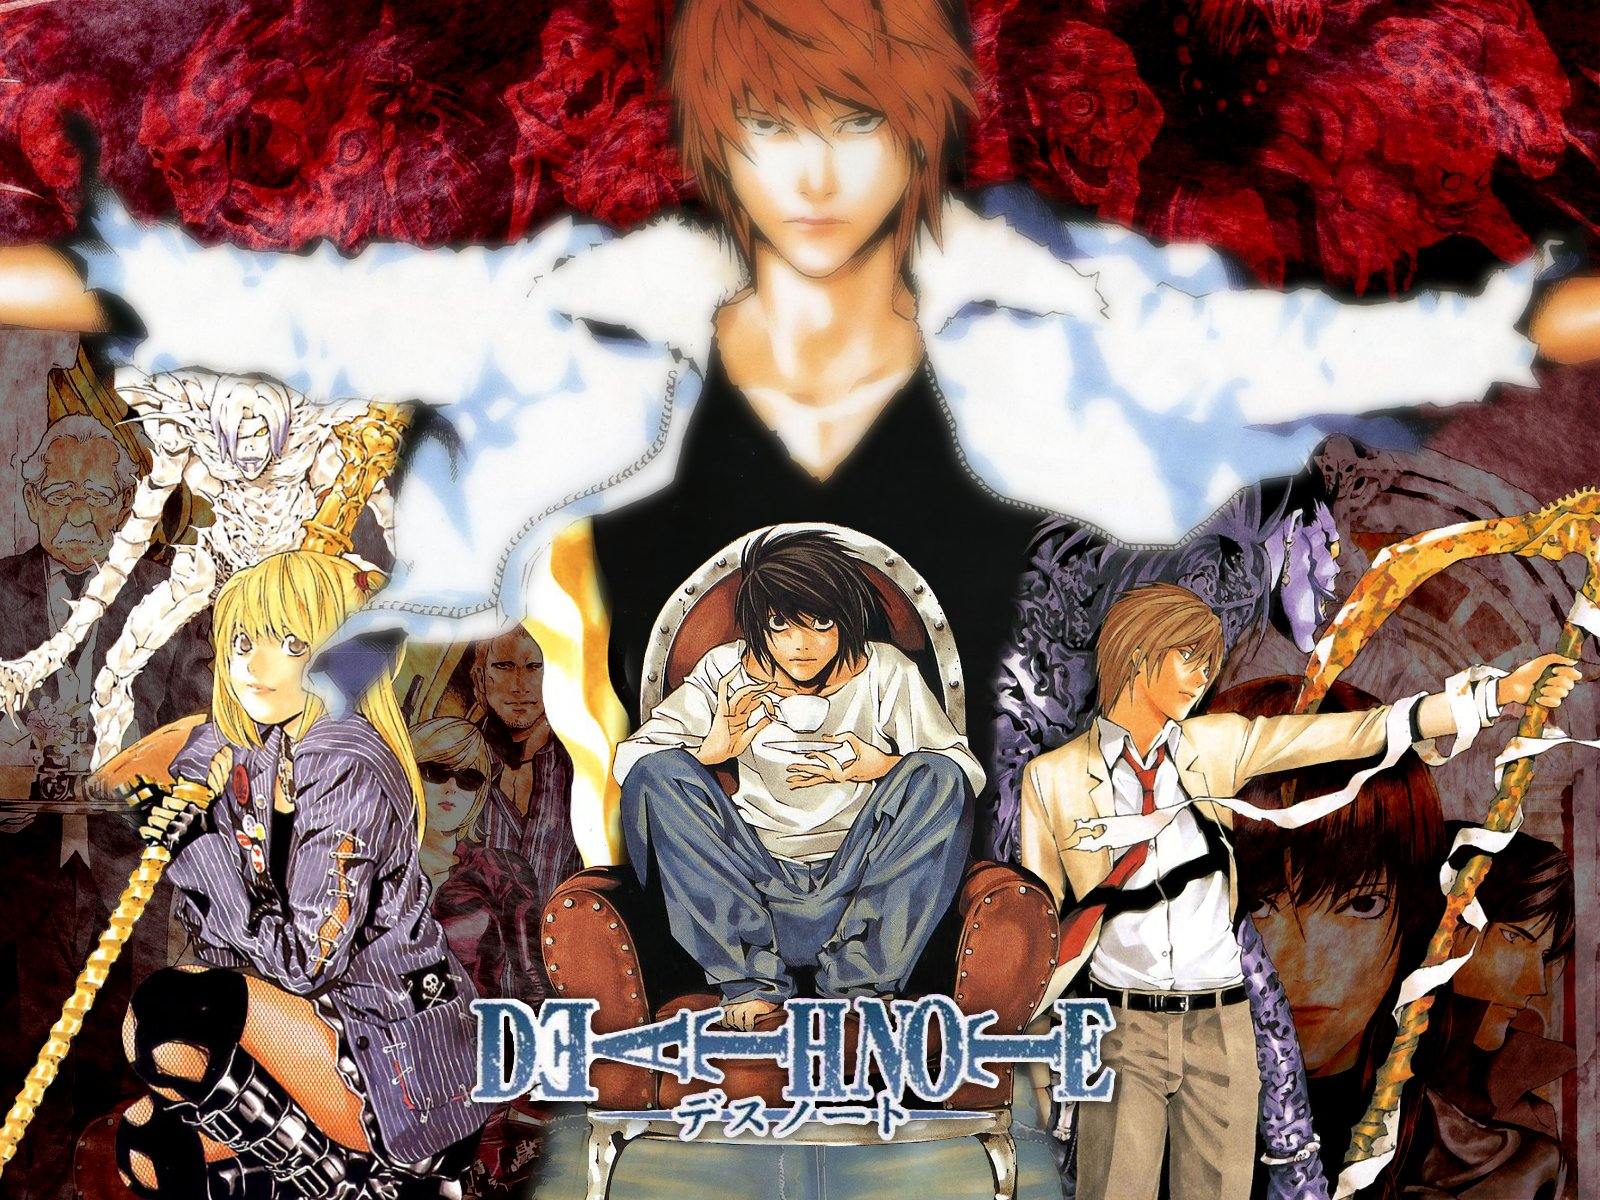 [DD][MU] Death Note [480p][MP4][37/37]